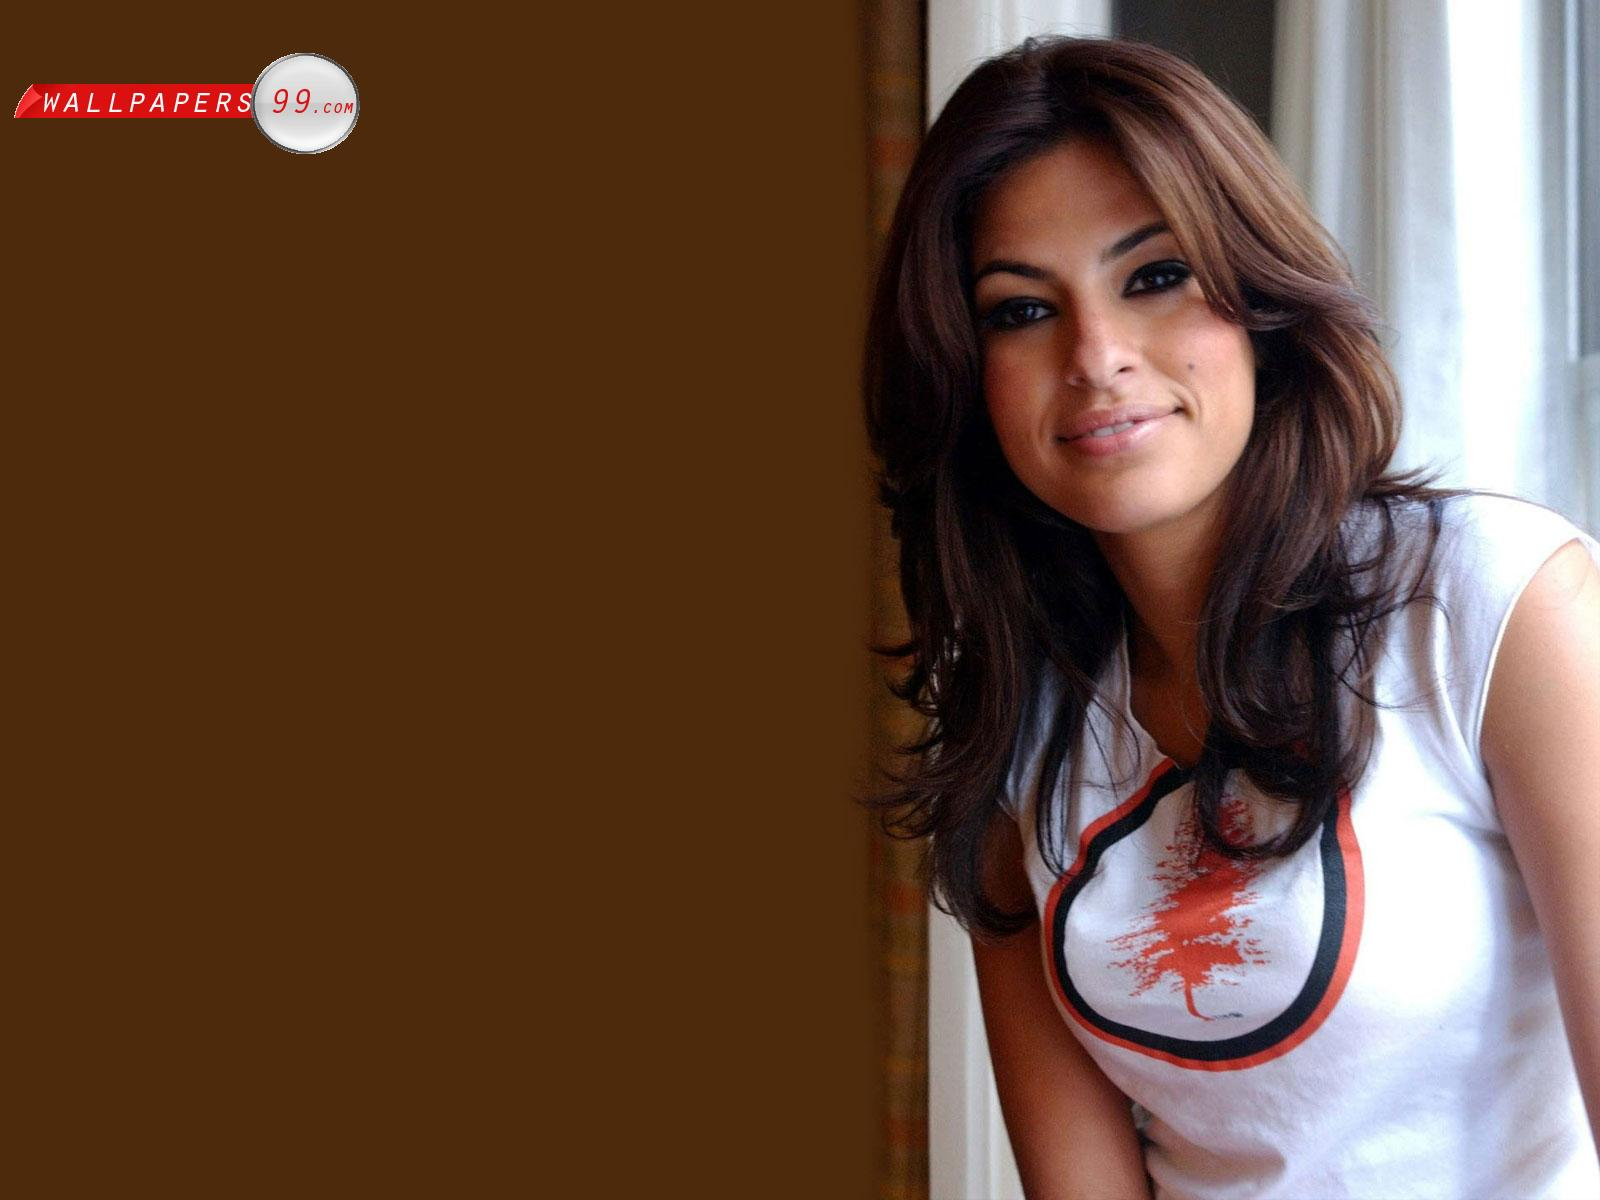 Wikimise: Eva Mendes Wiki and Pics